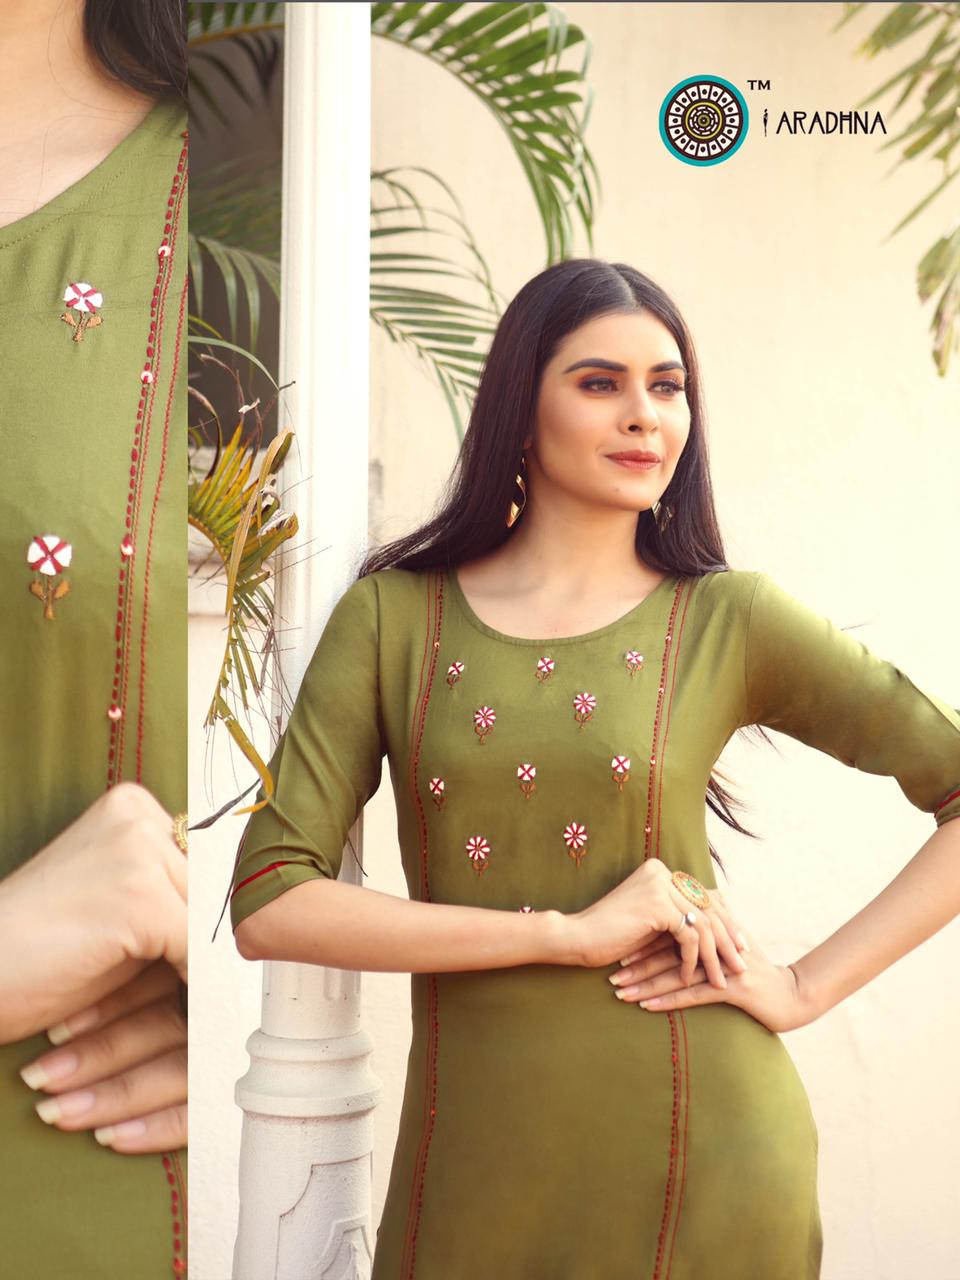 Aradhna Parrot Vol 7 Kurti Wholesale Catalog 11 Pcs 19 - Aradhna Parrot Vol 7 Kurti Wholesale Catalog 11 Pcs